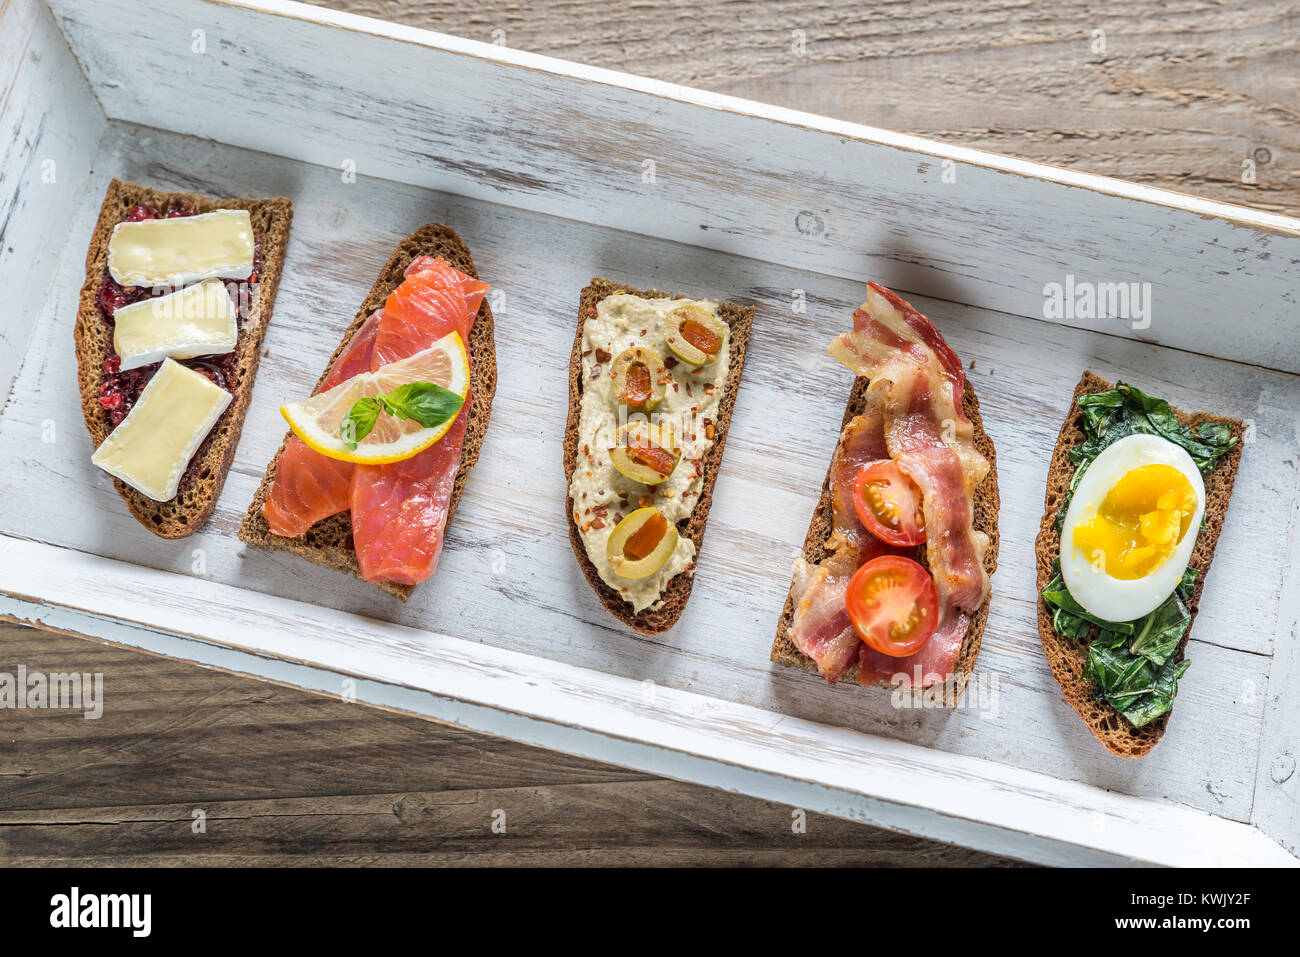 Bruschetta with different toppings on the wooden tray - Stock Image